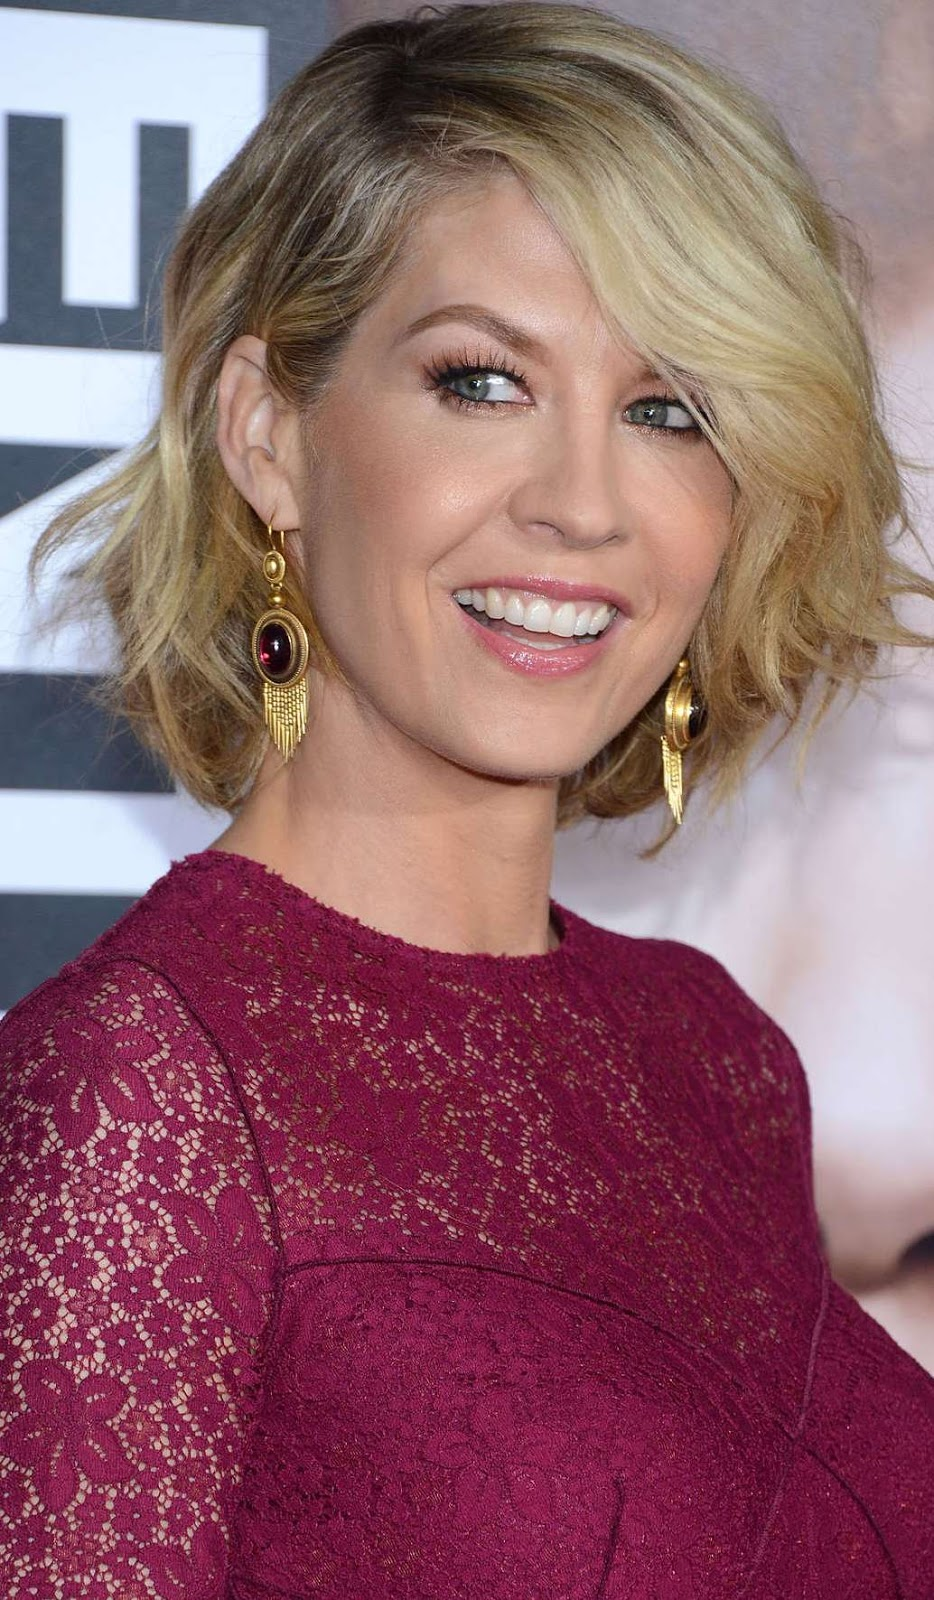 Discussion on this topic: Keala Kennelly, jenna-elfman-born-september-30-1971-age/